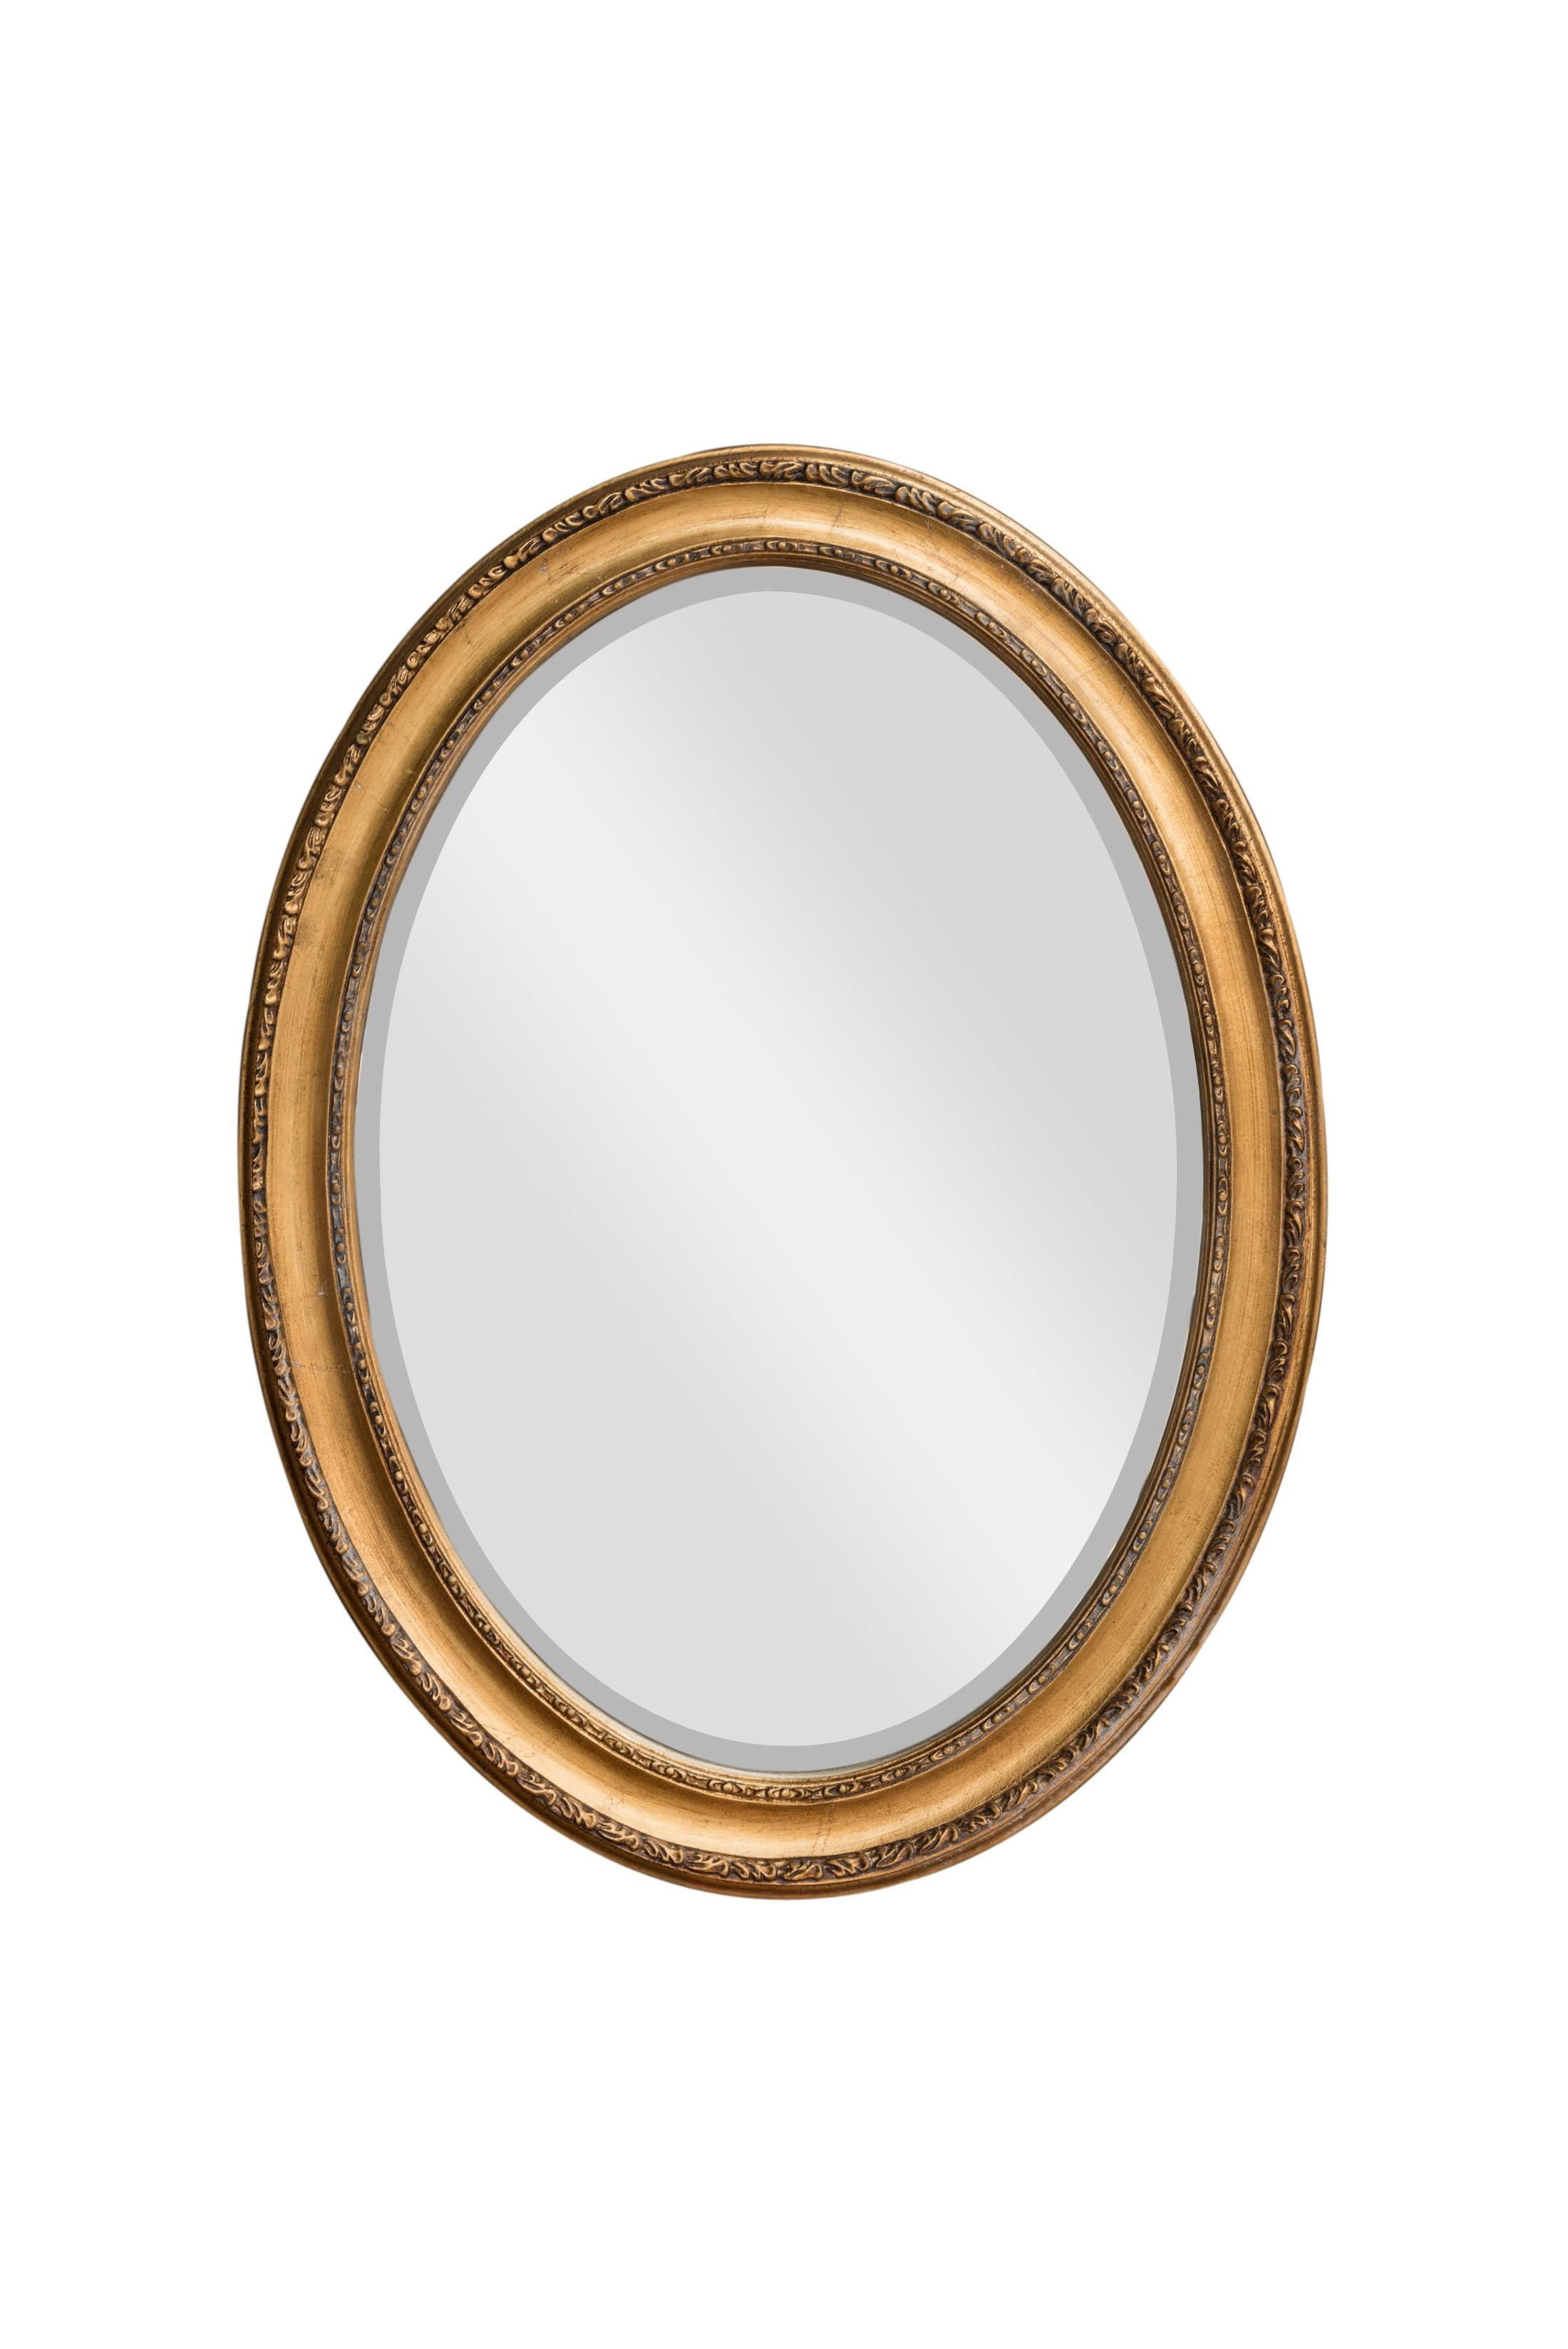 Oval Mirrors | Mirrors For Sale – Panfili Mirrors & Interiors Within Gold Round Mirrors (Image 15 of 20)